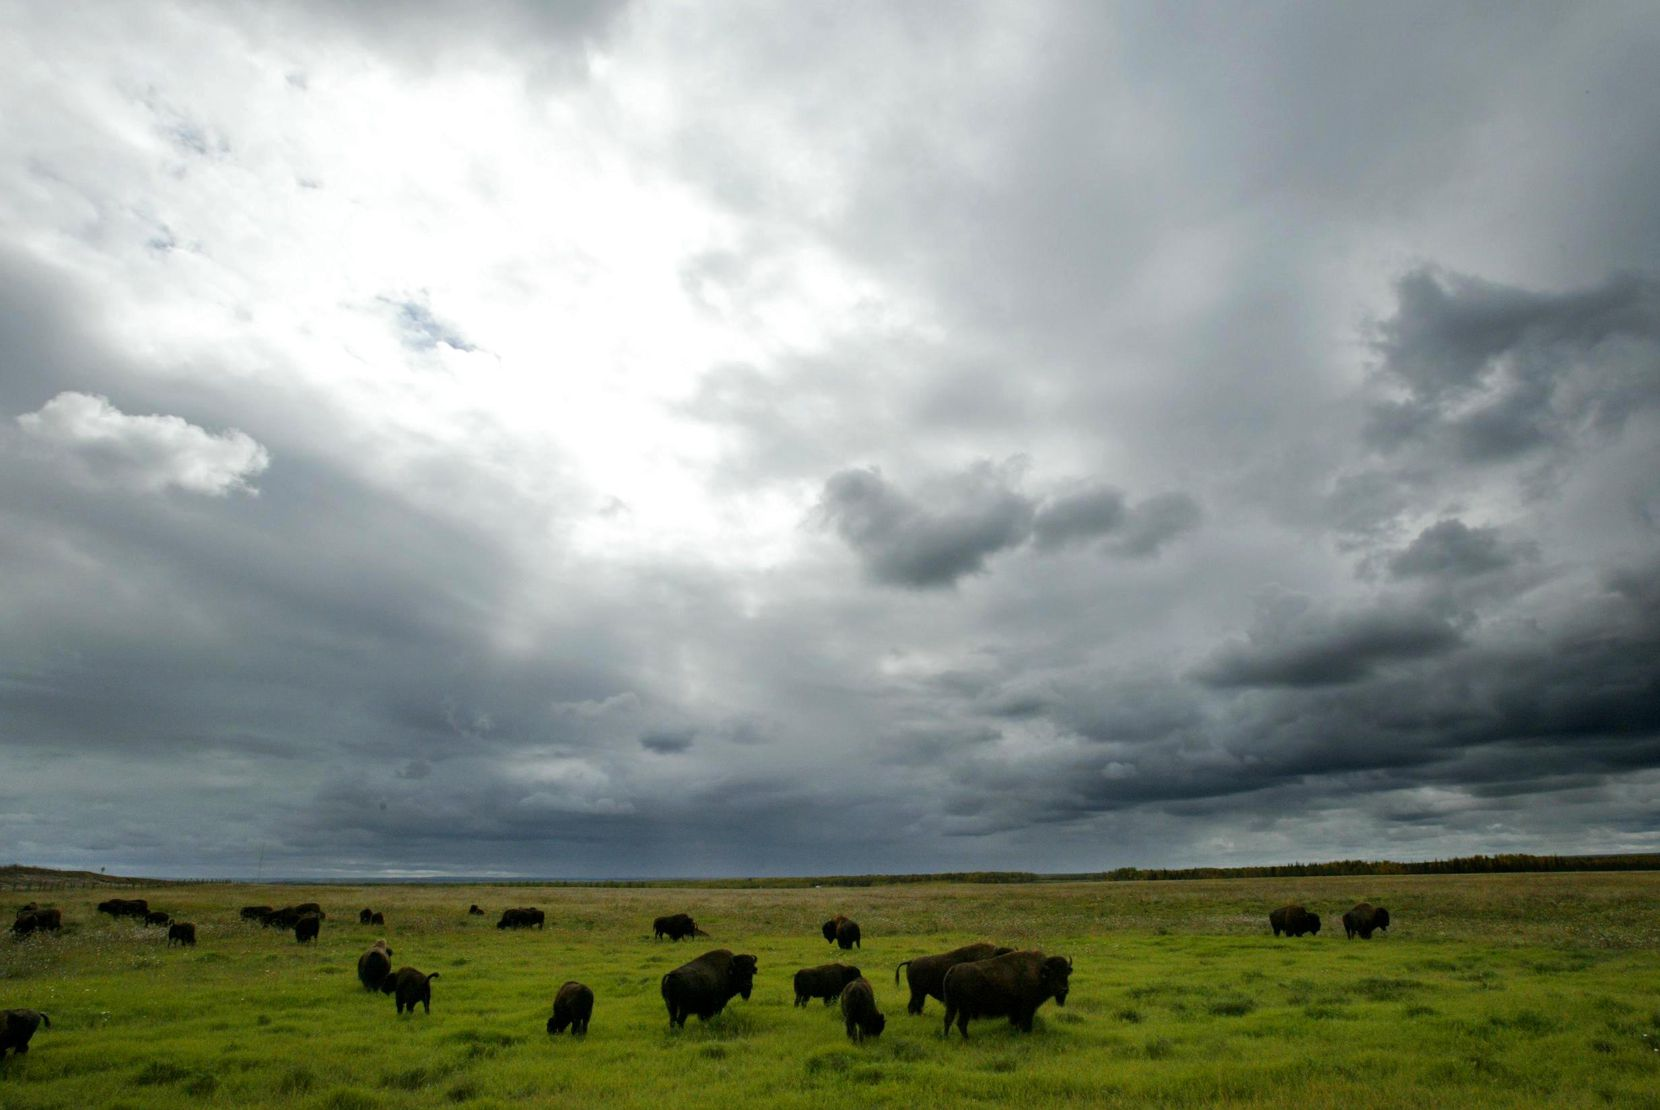 2005 FILE PHOTO -- Syncrude Canada Ltd. manages a 300 head wood bison herd as part of their reclamation program which aims to return the land used for mining back to its original state. Aboriginal communities are also consulted in matters relating to environmental practices.